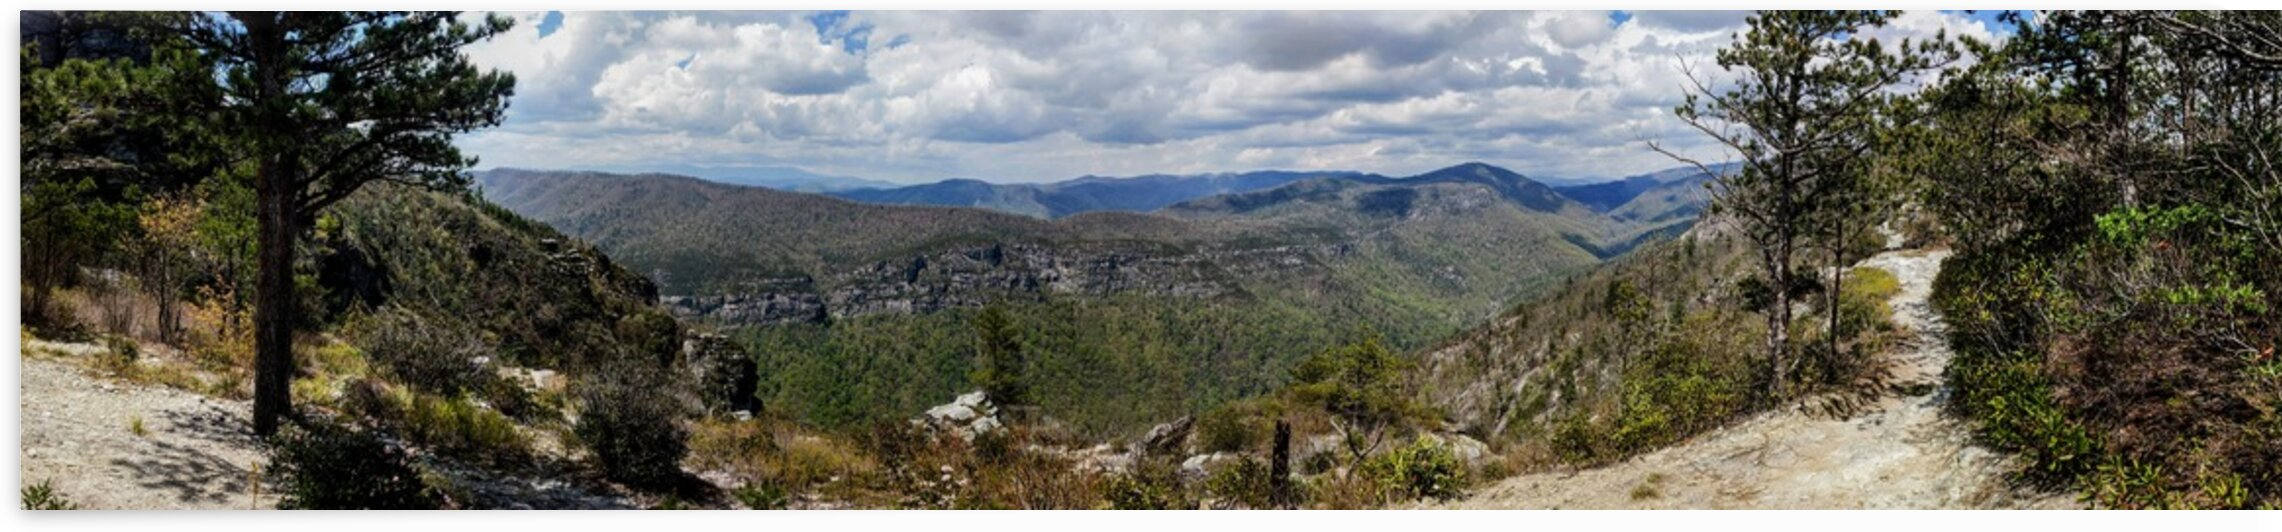 Linville Gorge Panorama by Adam Mobley